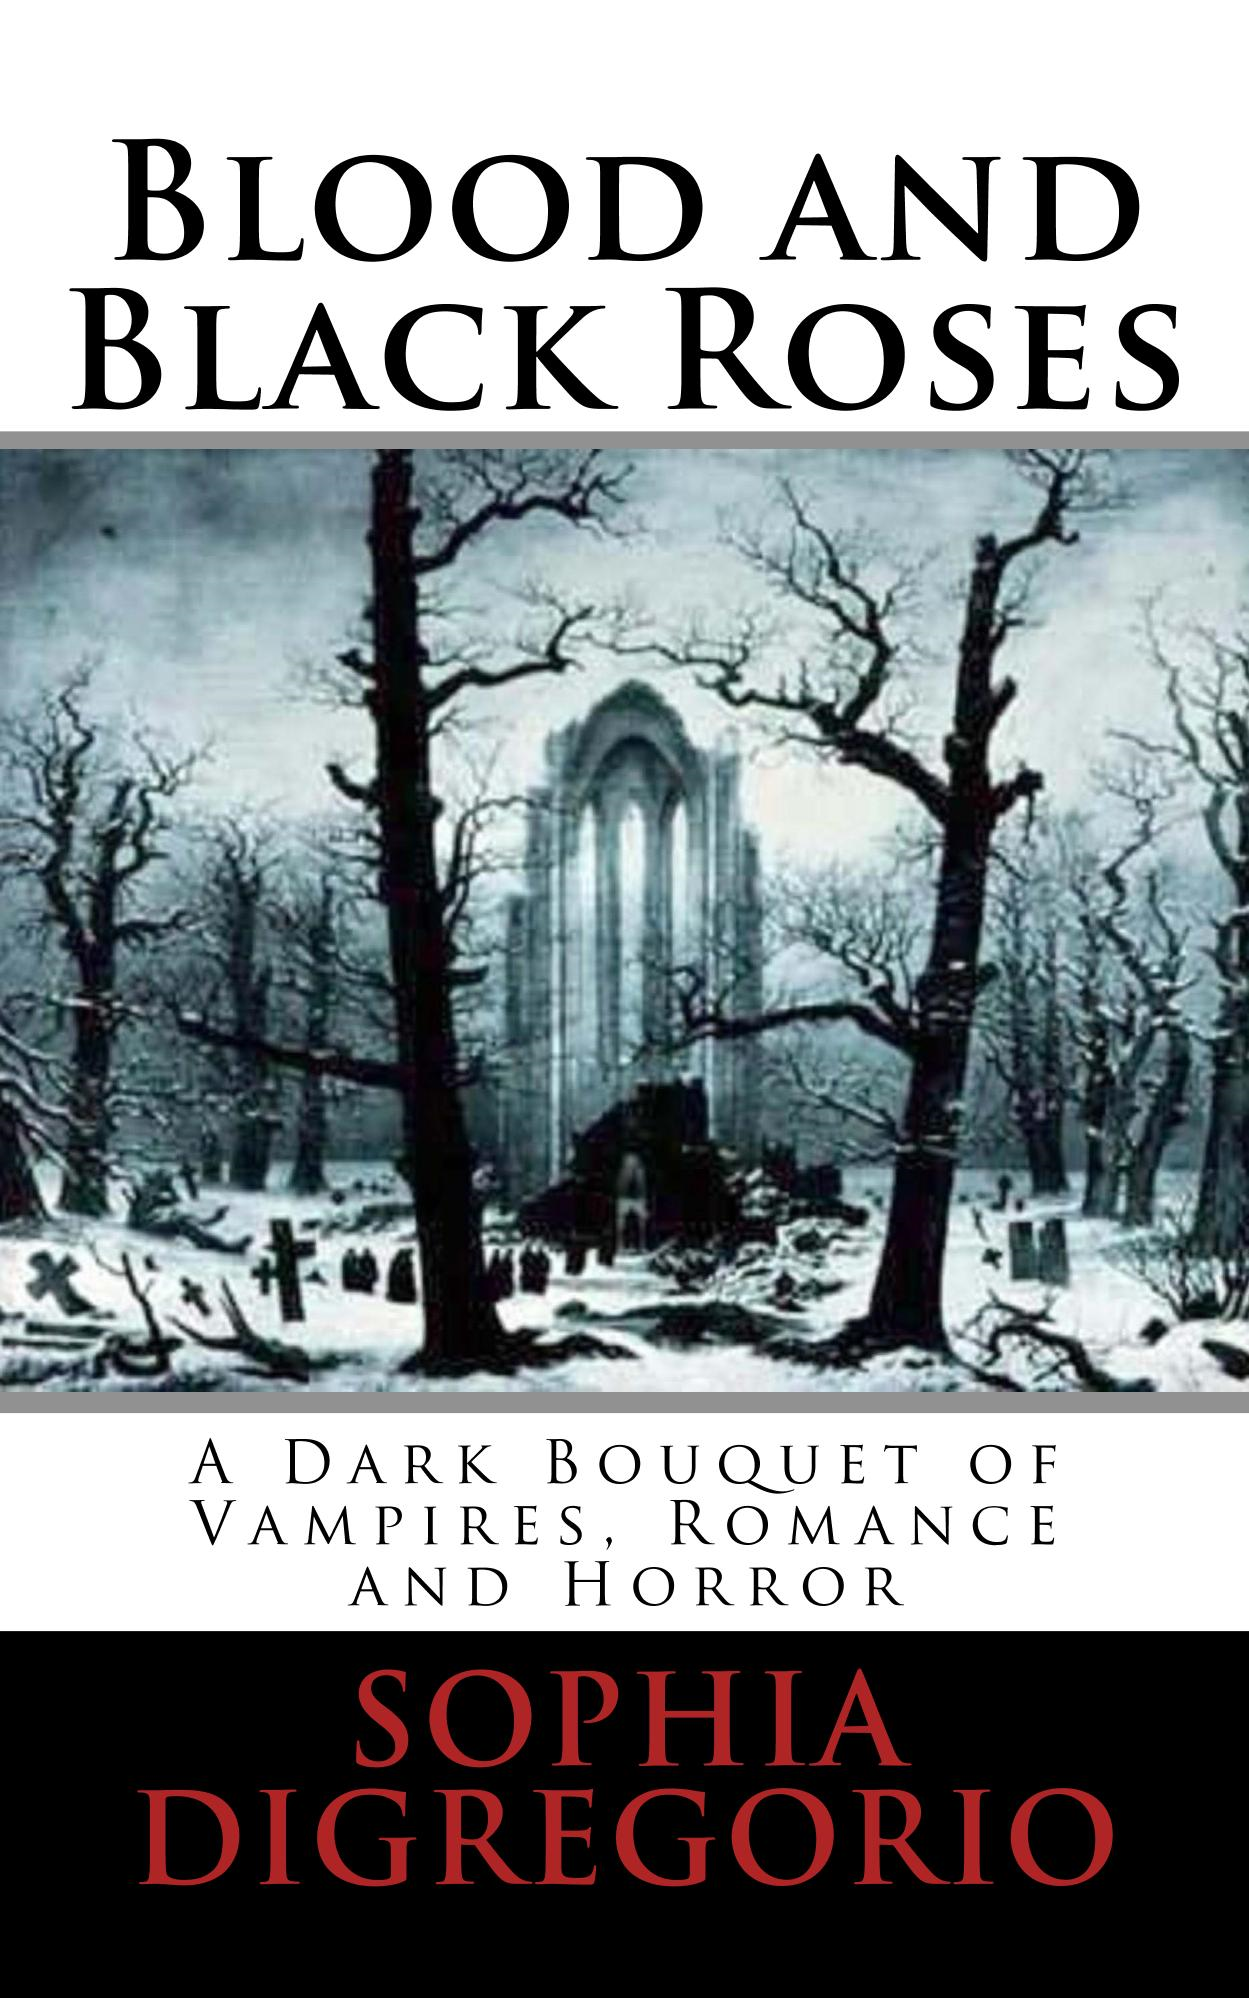 Blood and Black Roses